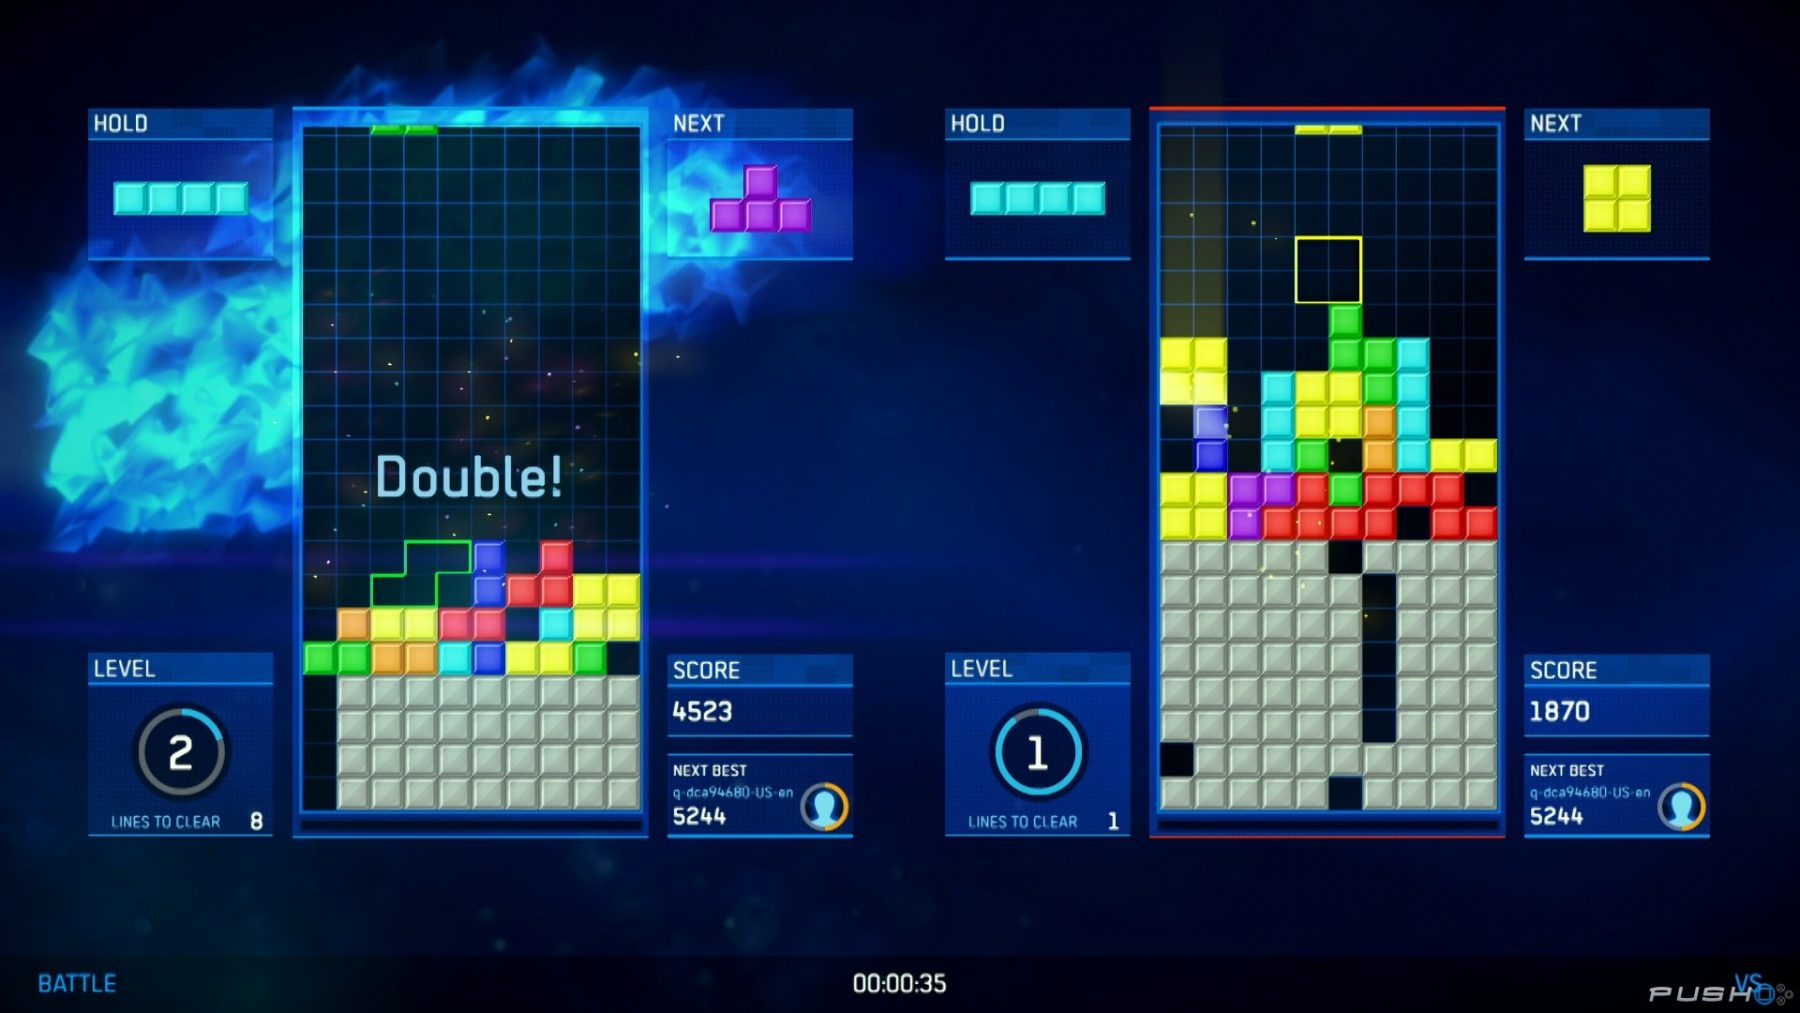 Download the game Tetris Ultimate for PS4 – Hacked Edition review